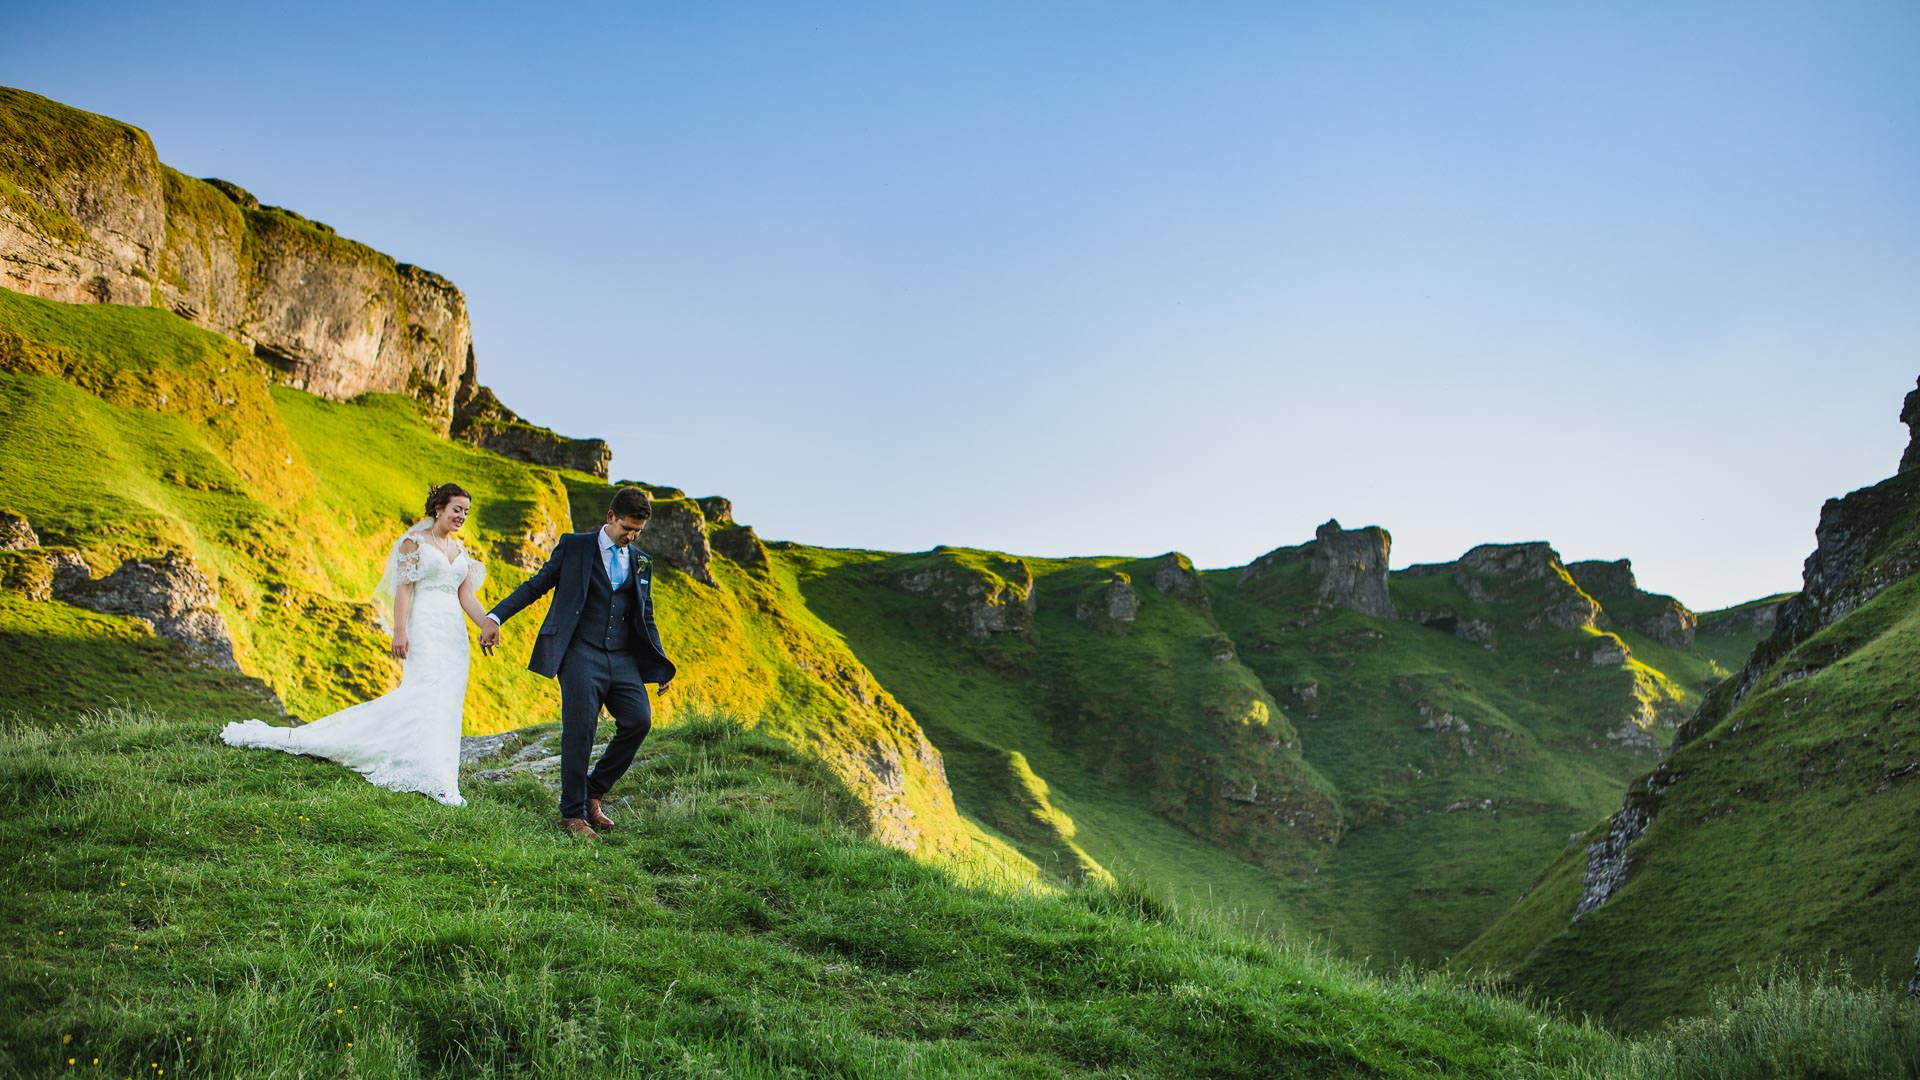 Wedding photography across Yorkshire and the Peak District by Tierney Photography.